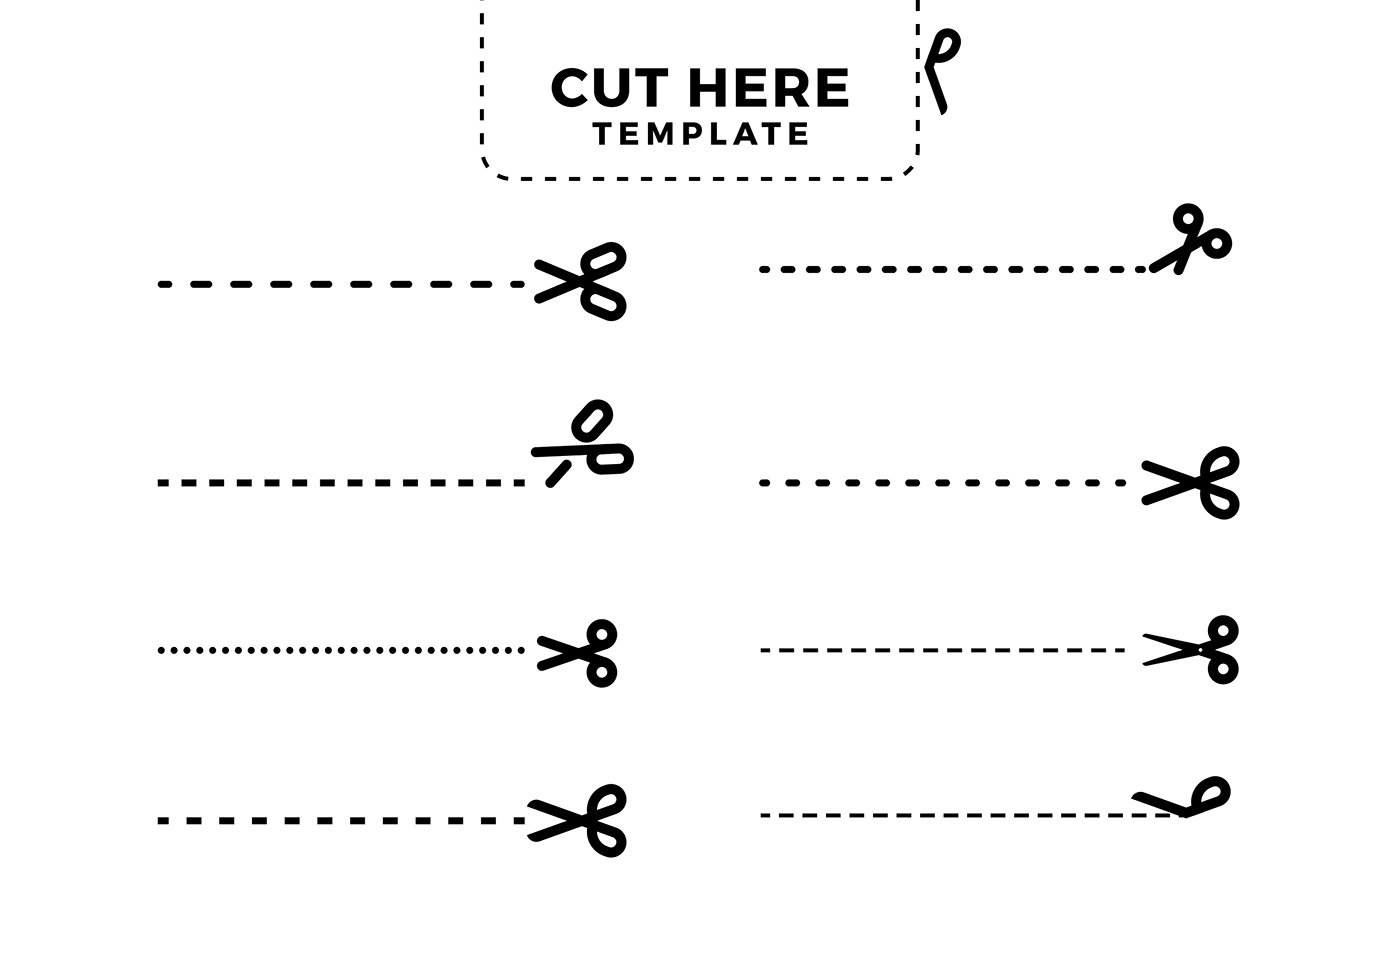 Cut Here Template Free Vector Download Free Vector Art